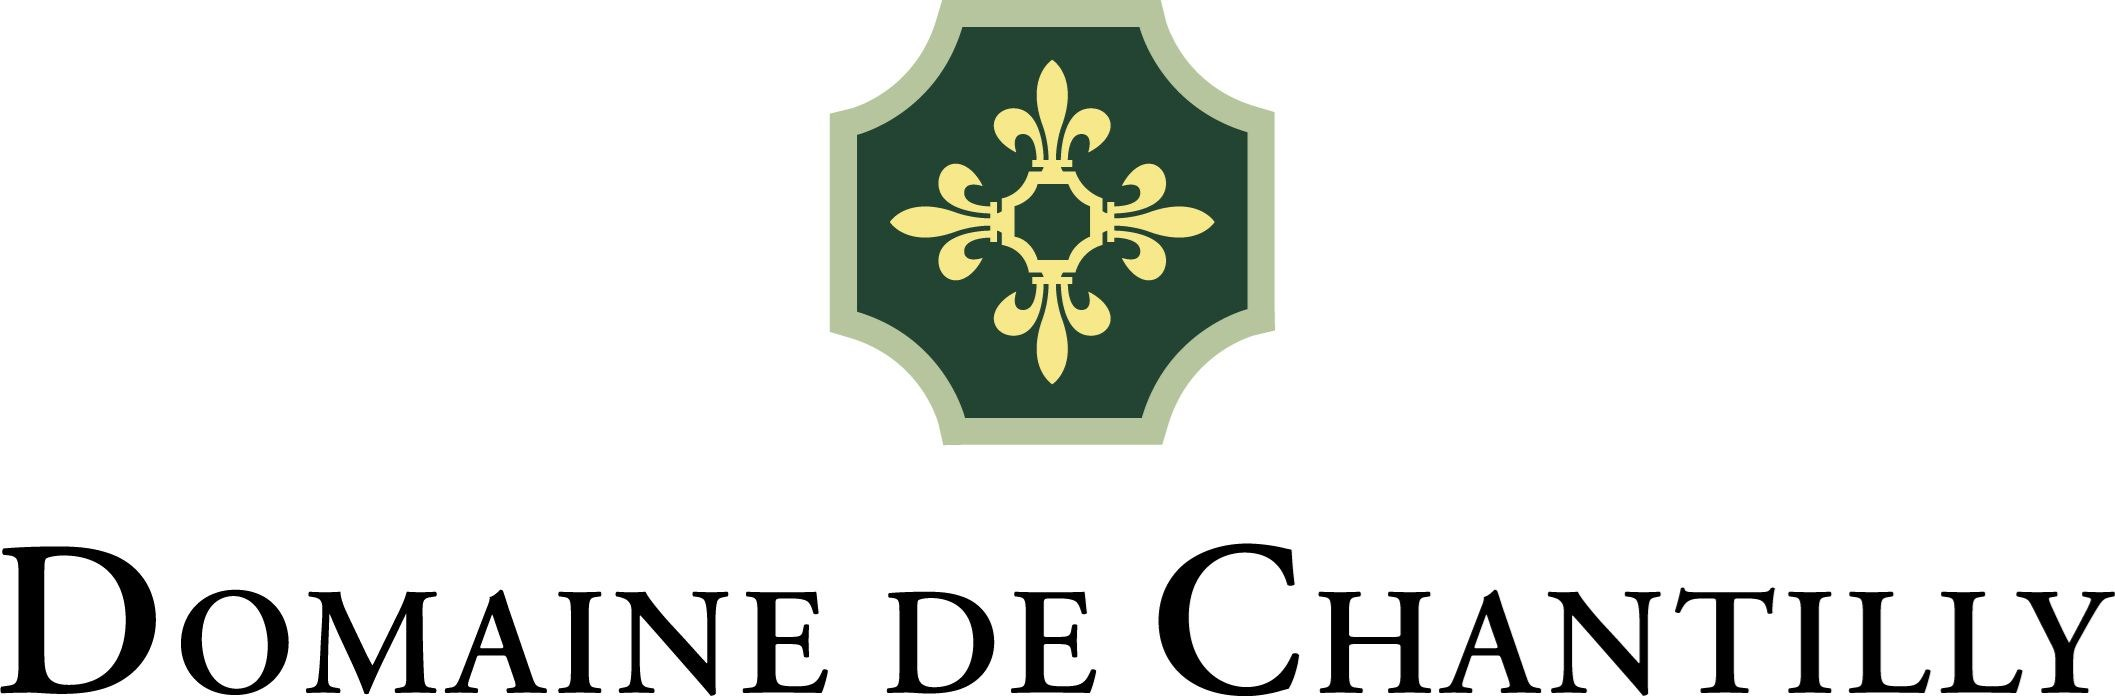 Domaine%20de%20Chantilly